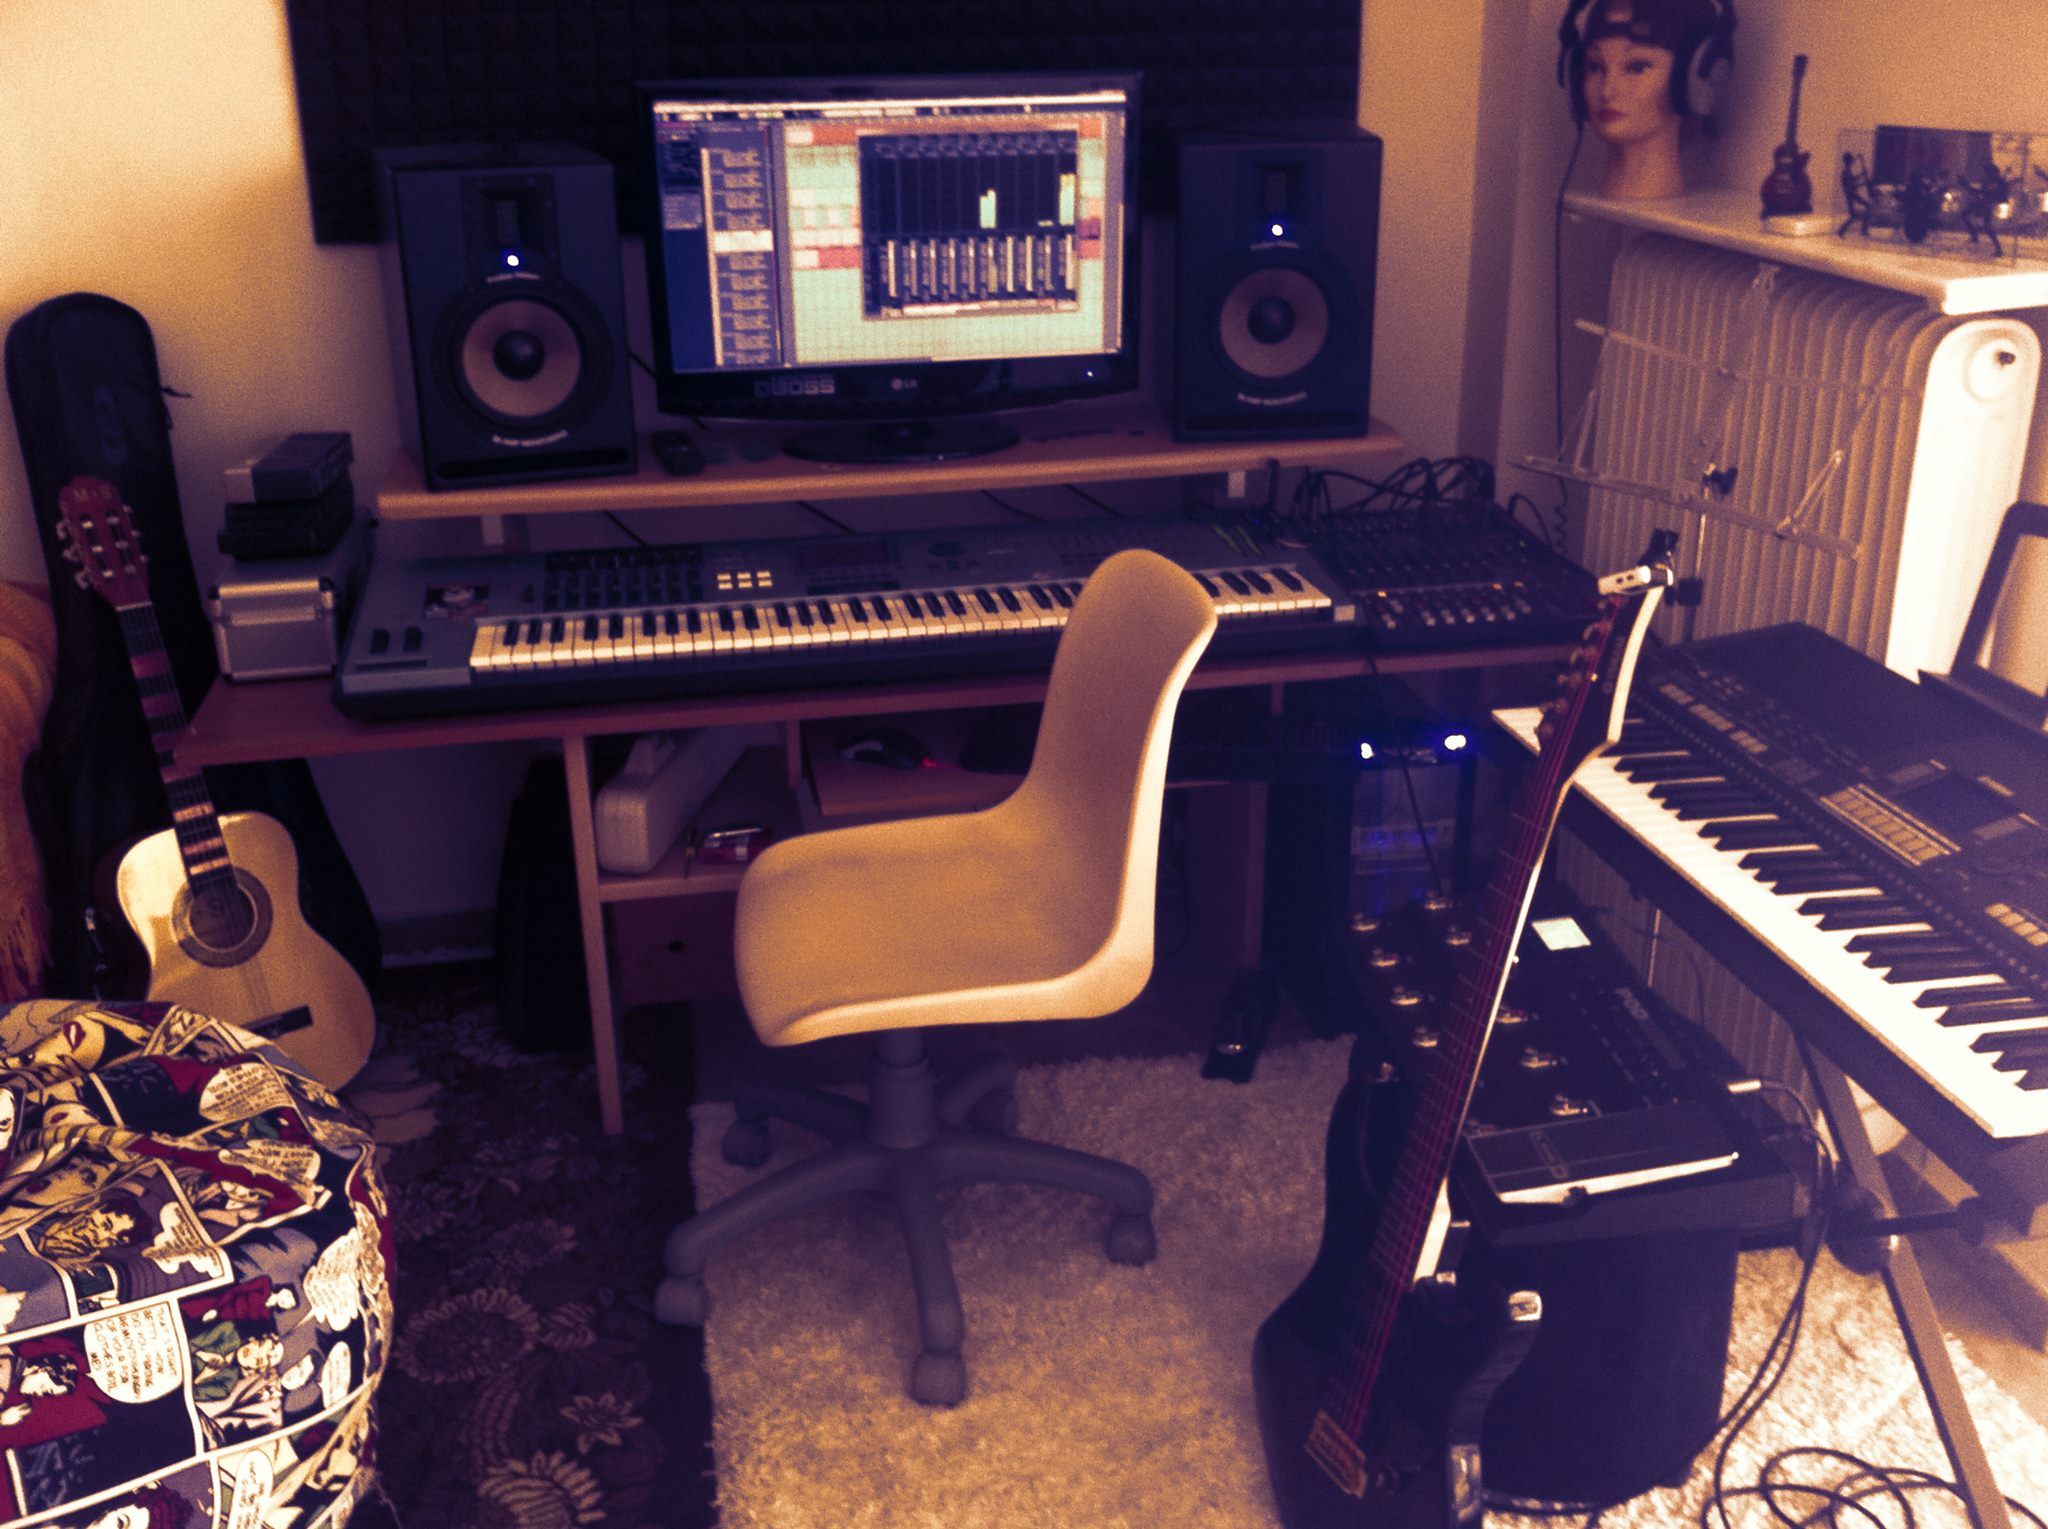 Long Play Sent Us This Great Home Studio Shot Not Sure About That Chair Though